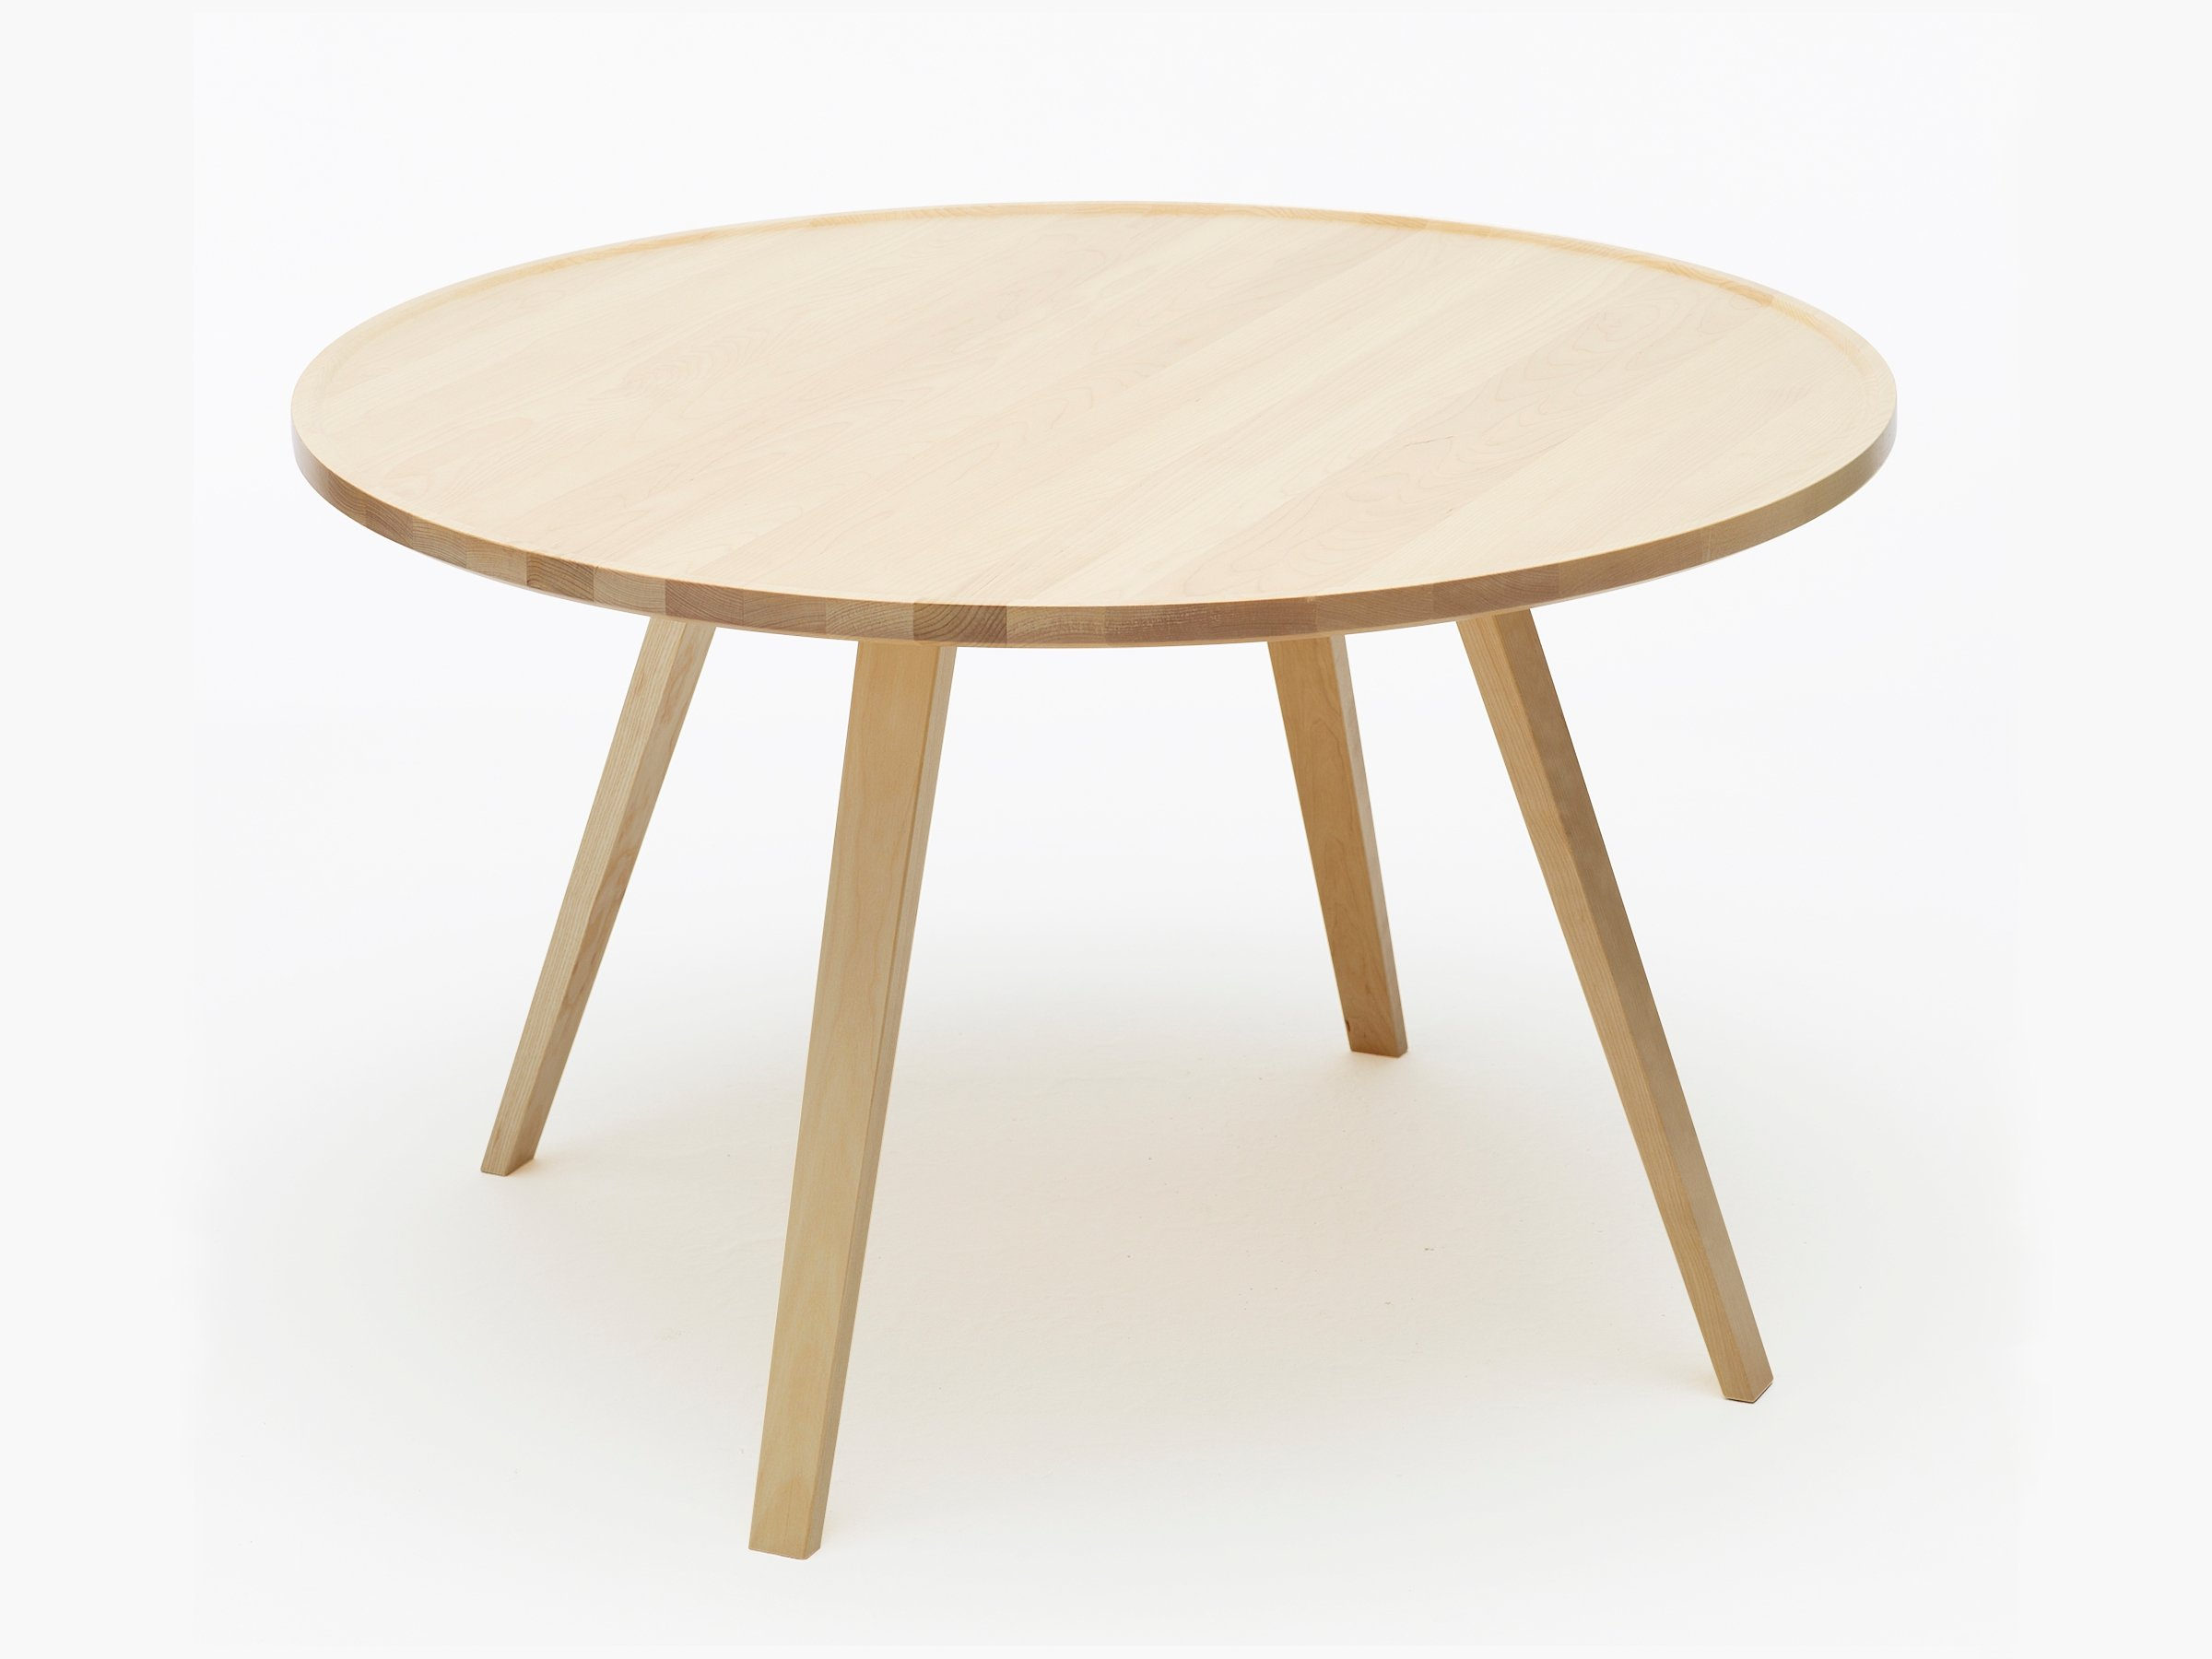 Mill table basse ronde by karl andersson s ner design roger persson - Tables basses rondes en bois ...